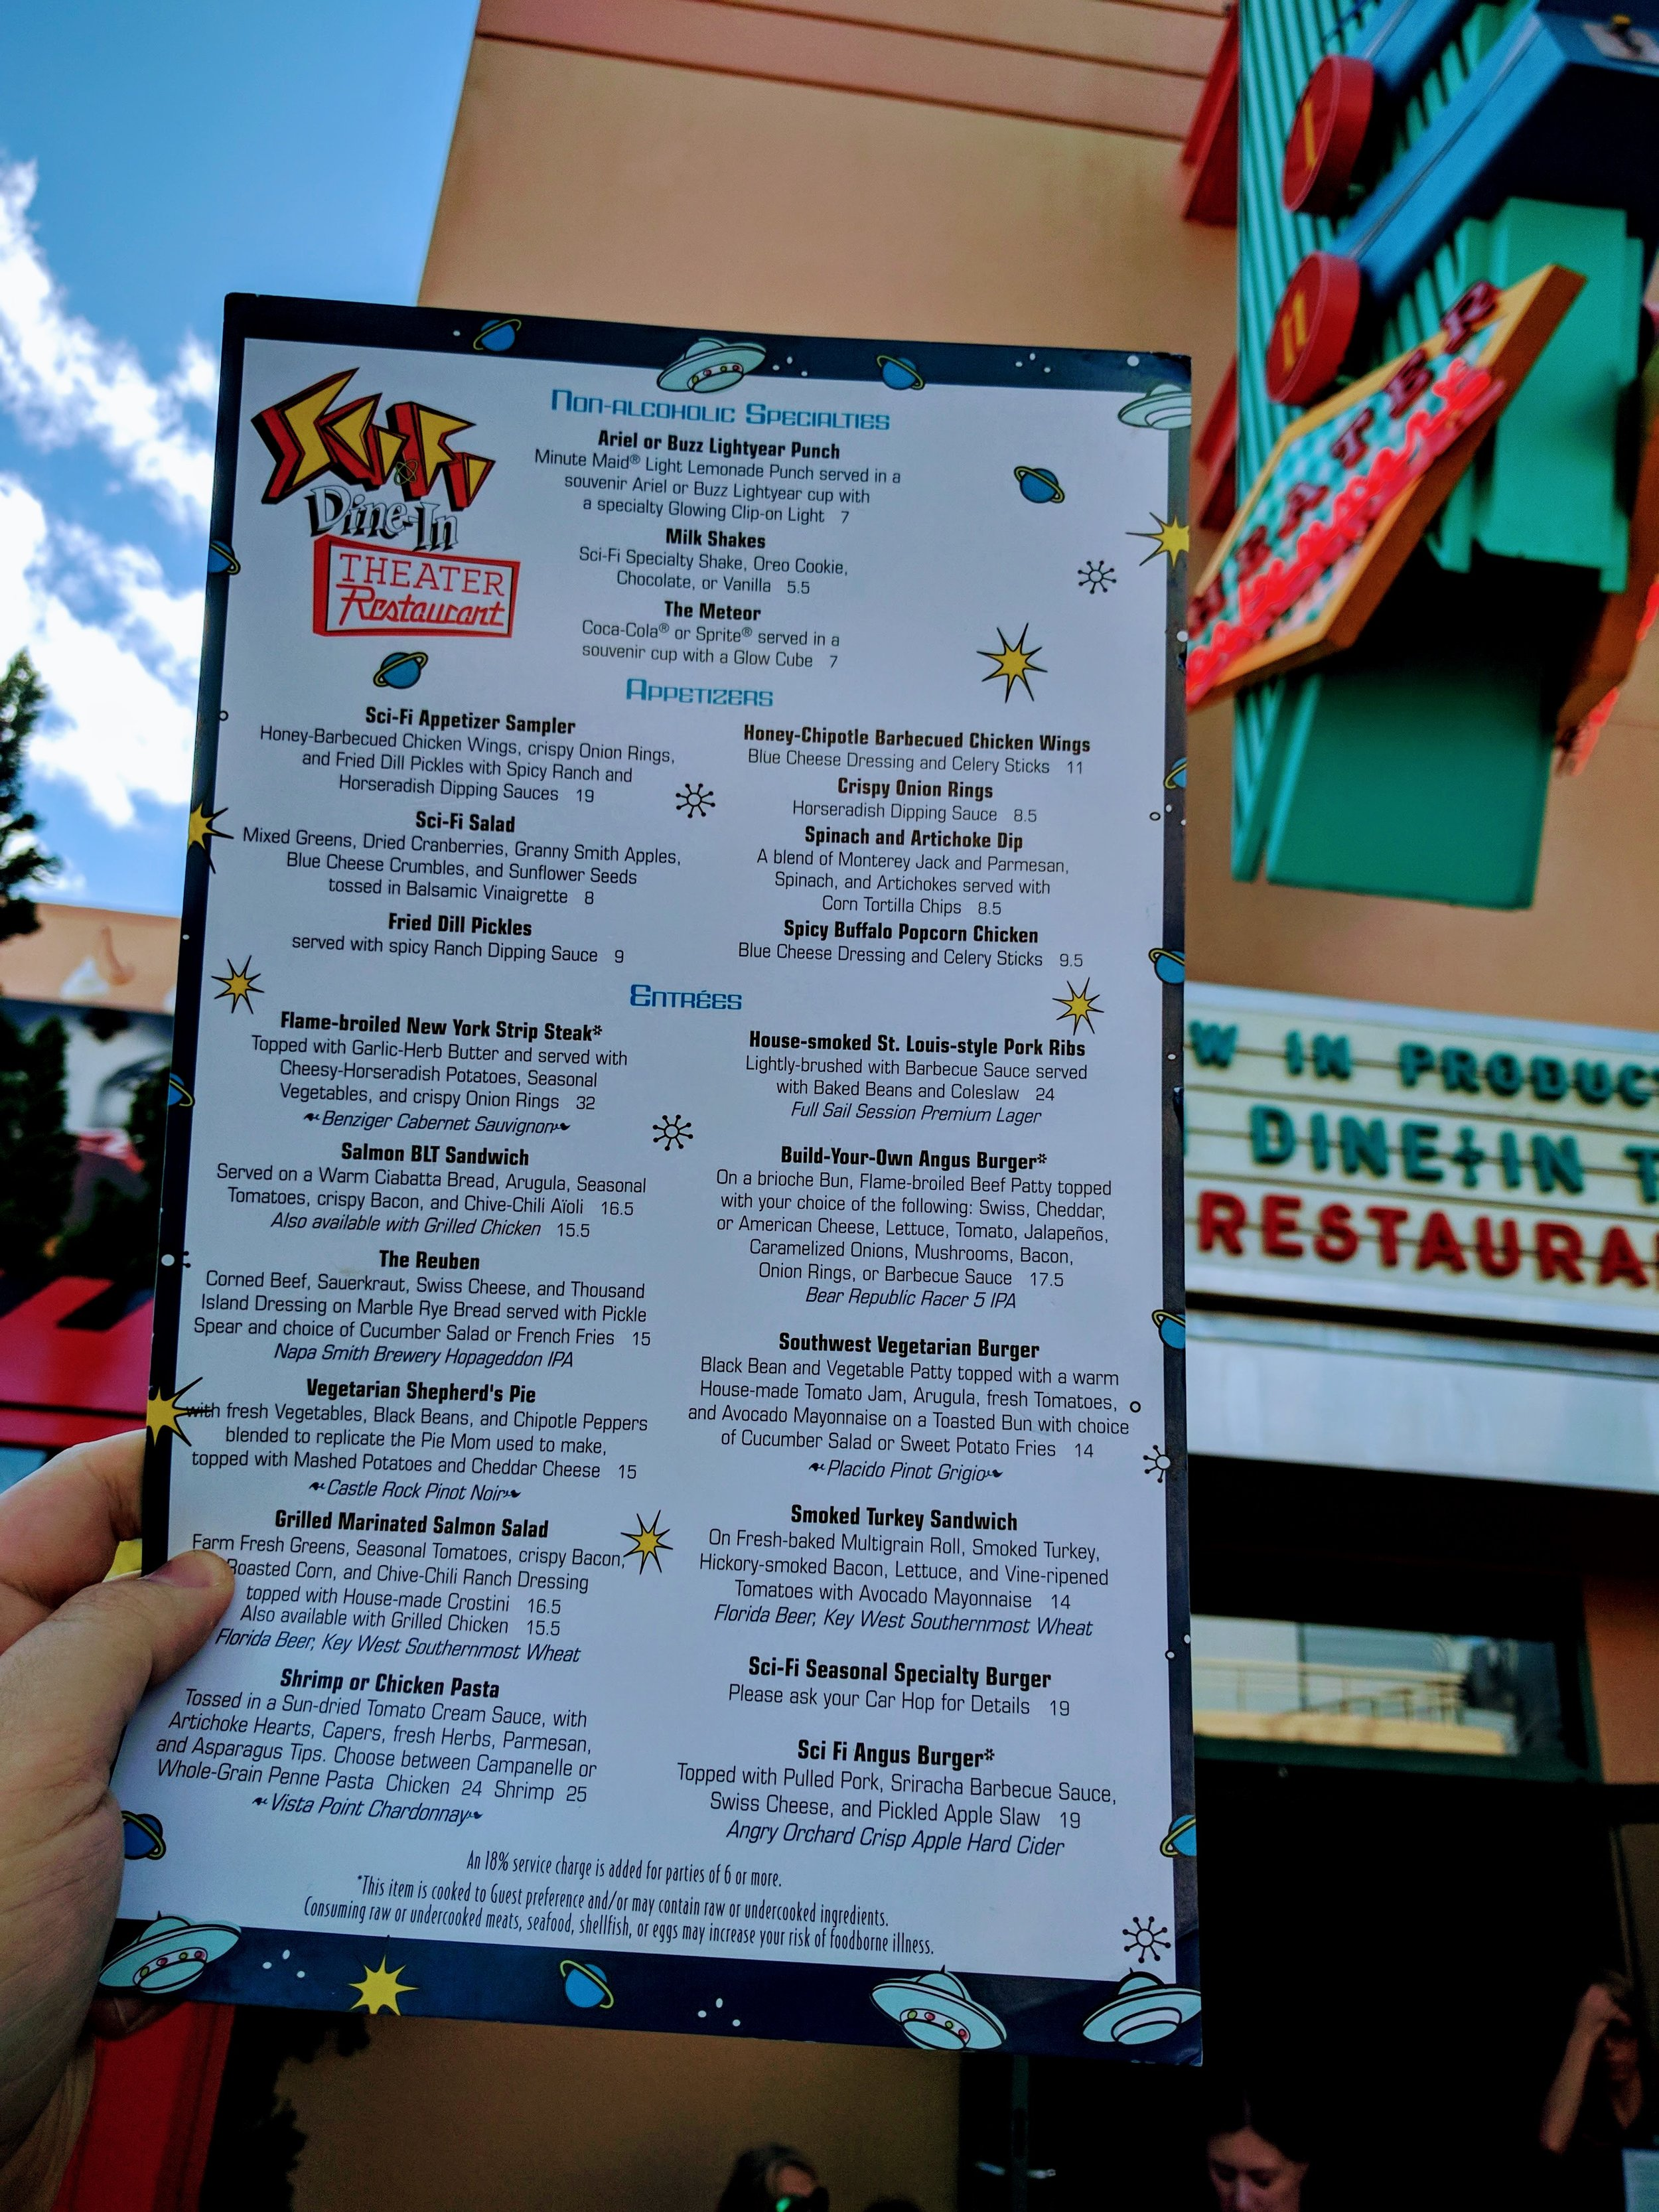 Sci-Fi Dine-In is located in Hollywood Studios between ABC Commissary and Muppets 3D.